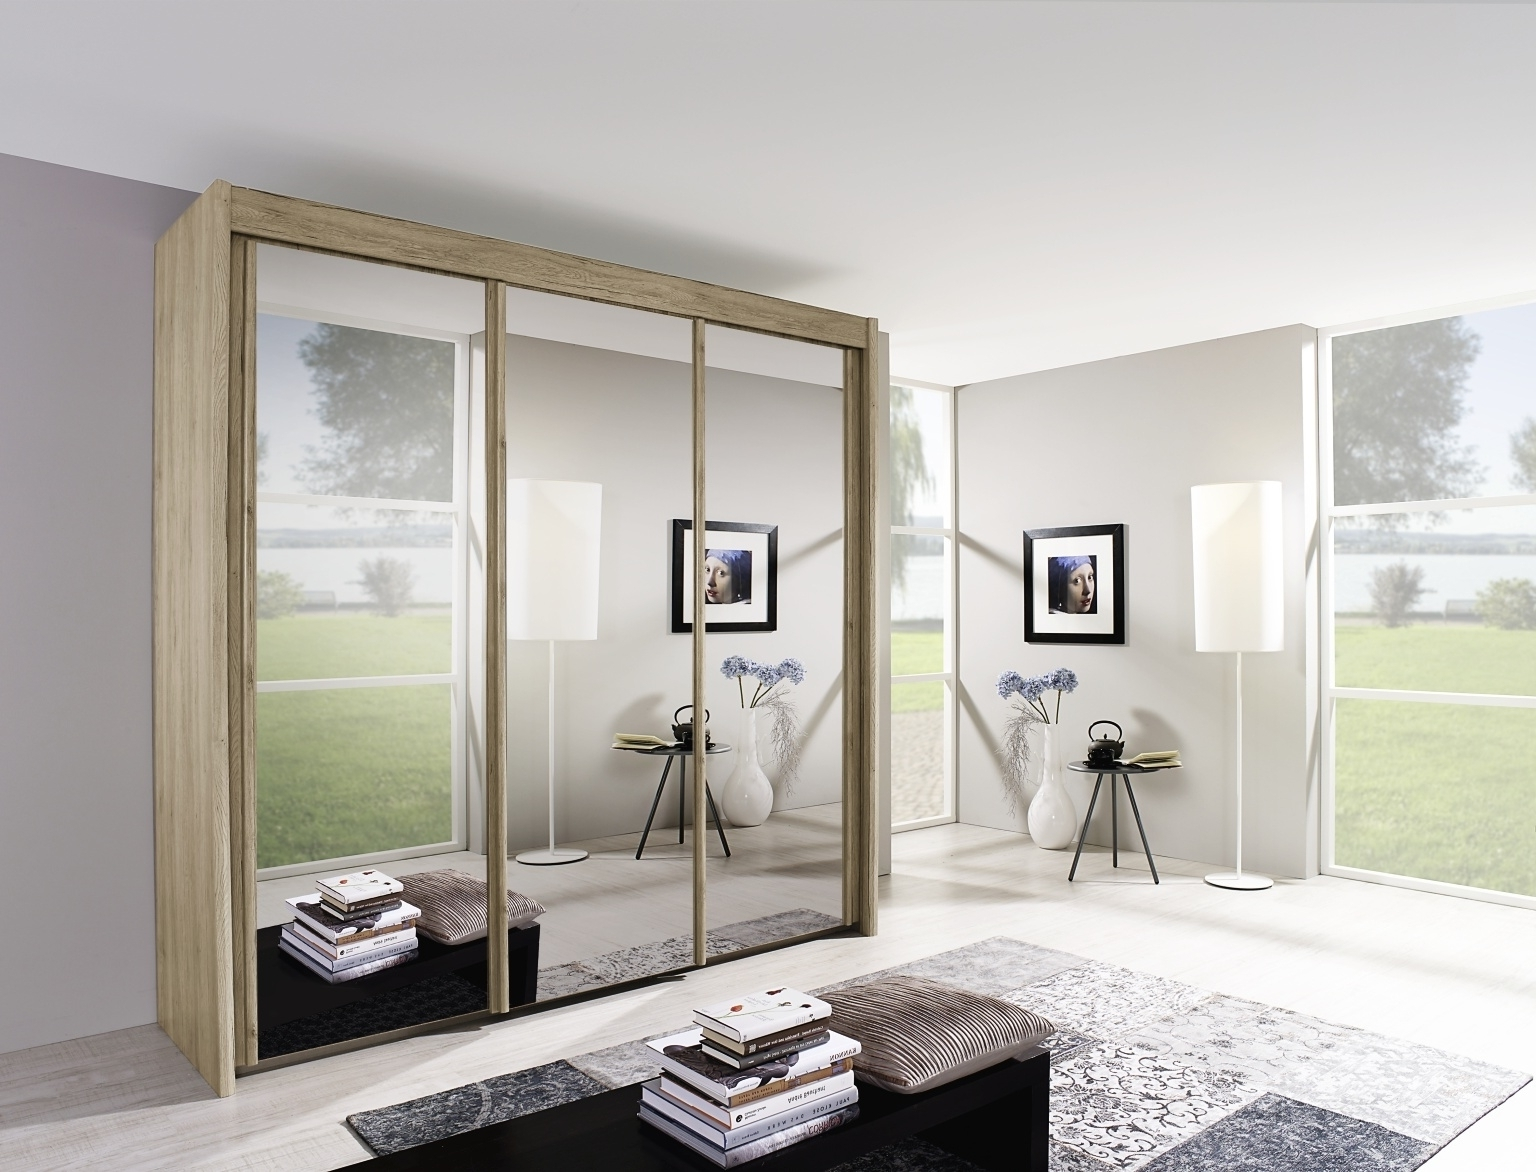 Most Recently Released Imperial Wardrobes Inside Buy Rauch Imperial Sliding Wardrobe – Front With Mirror – Cfs Uk (View 5 of 15)